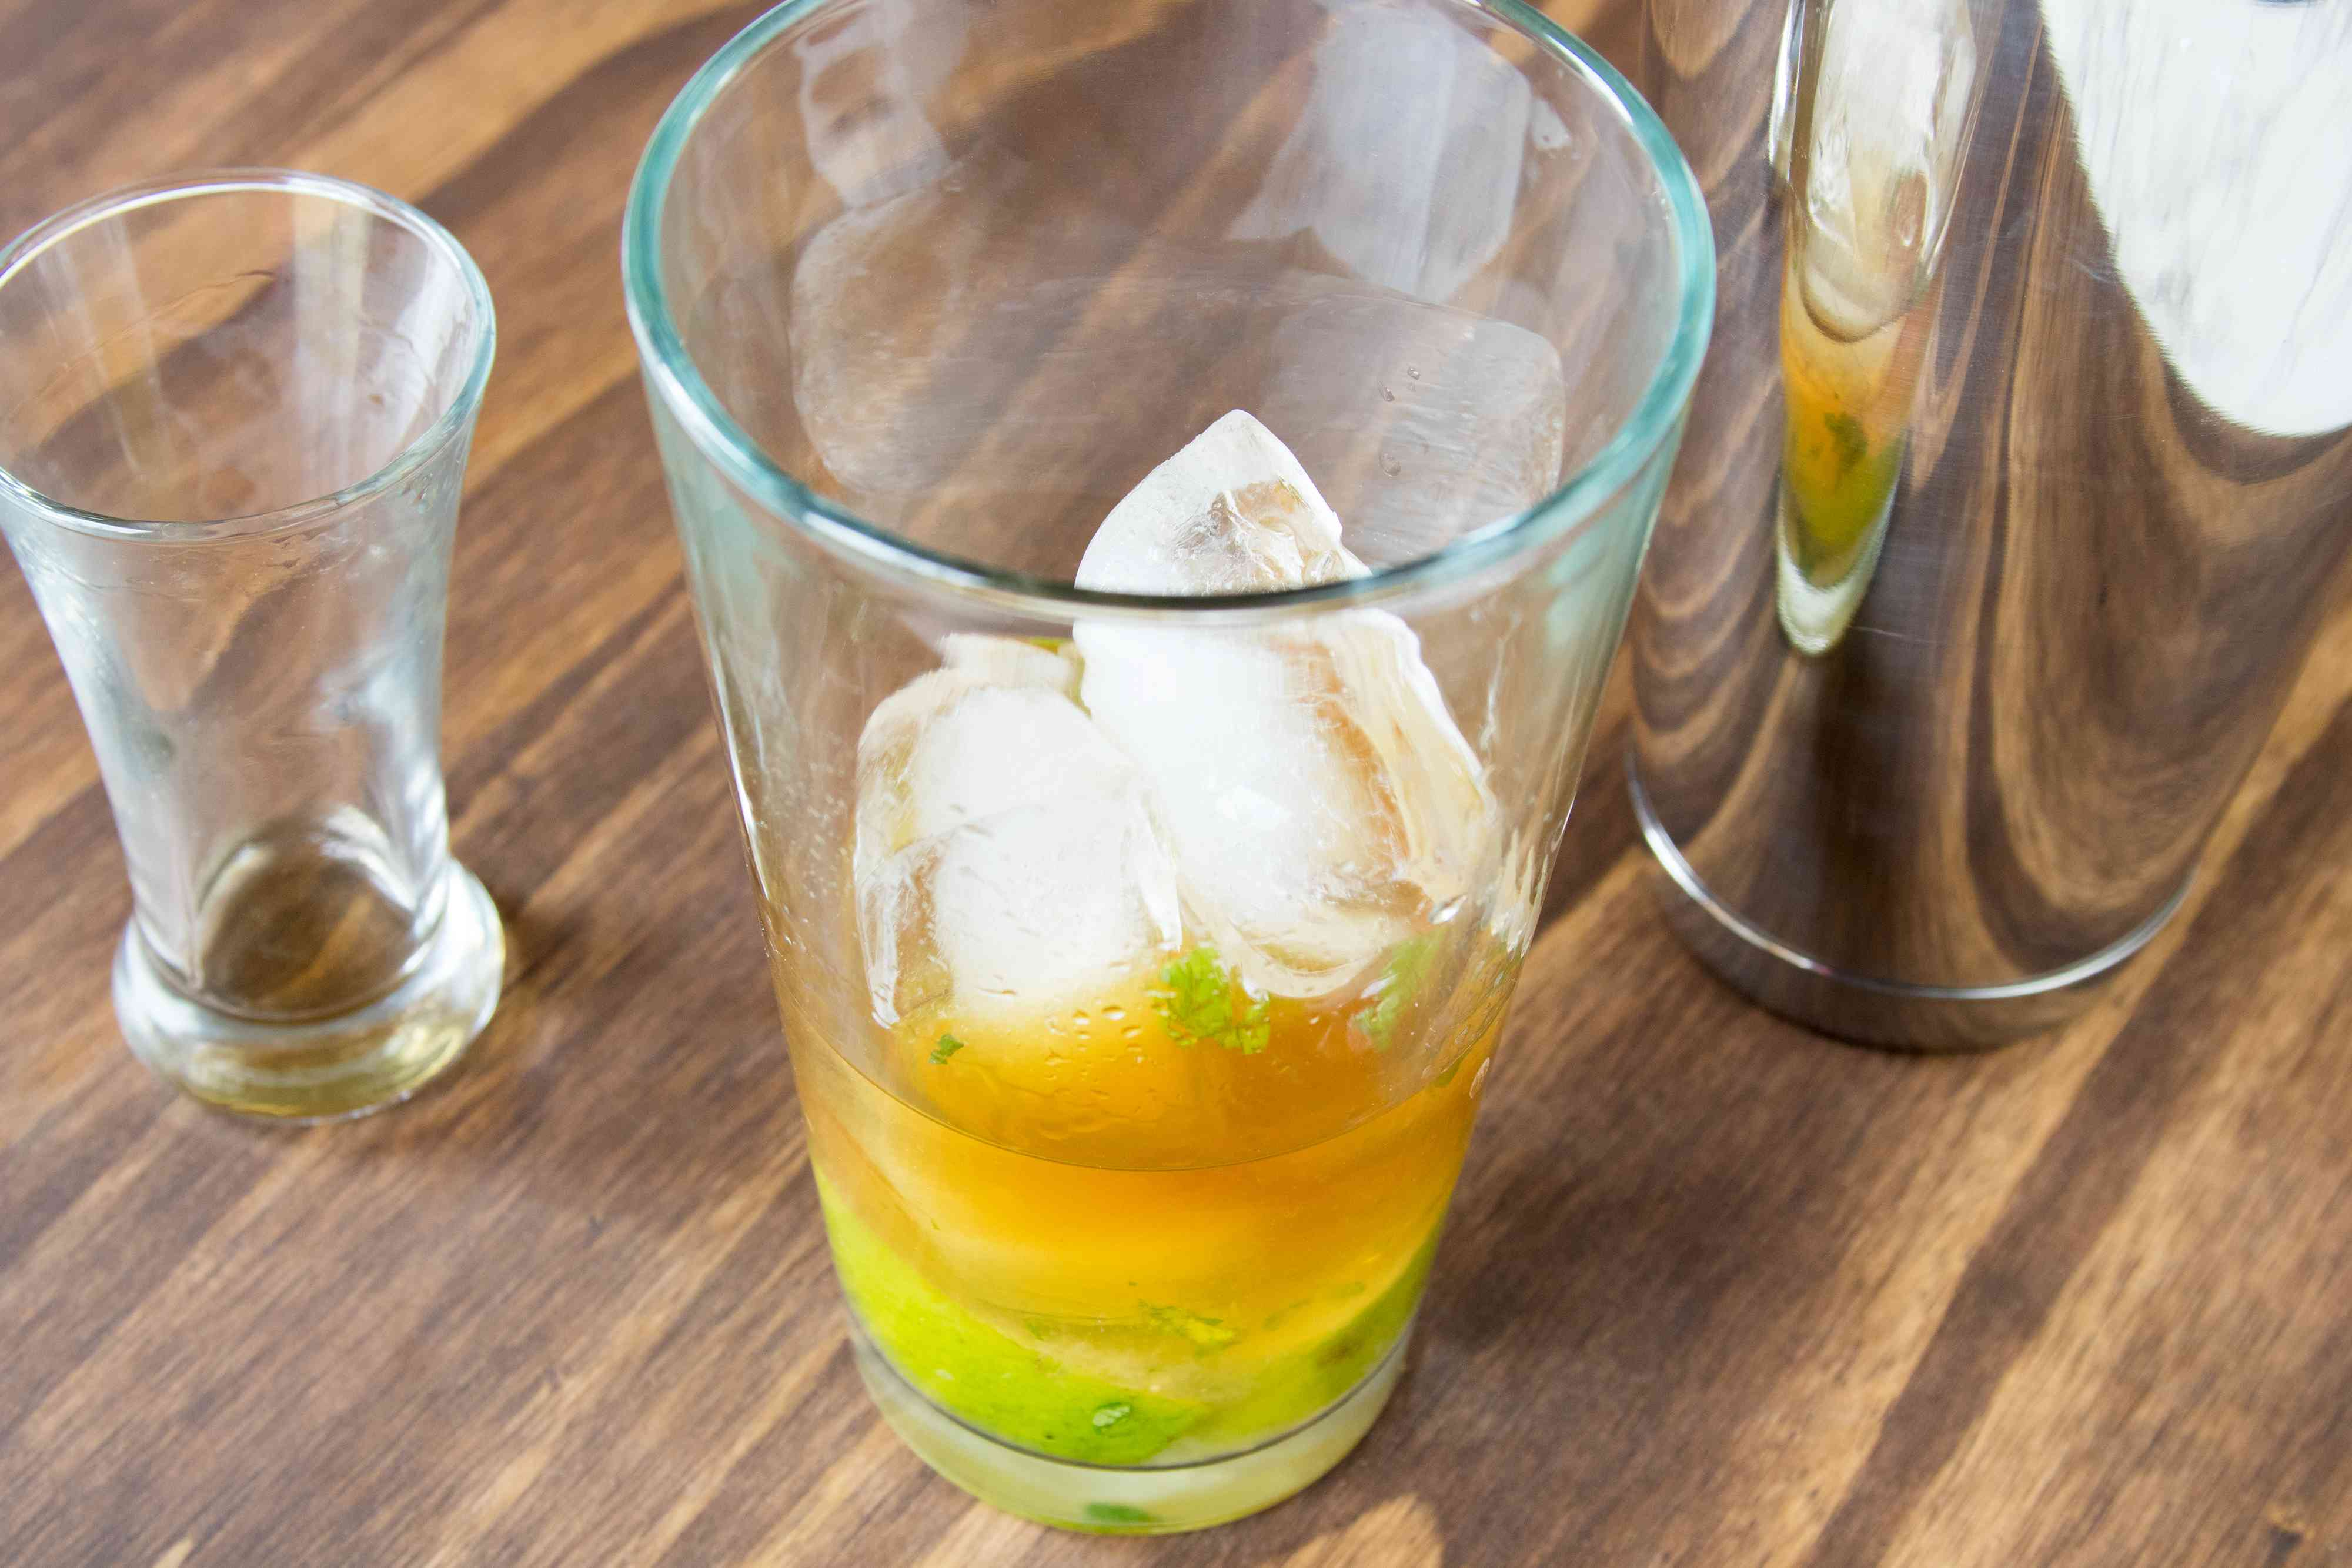 Mixing a Whiskey Cider Julep Cocktail